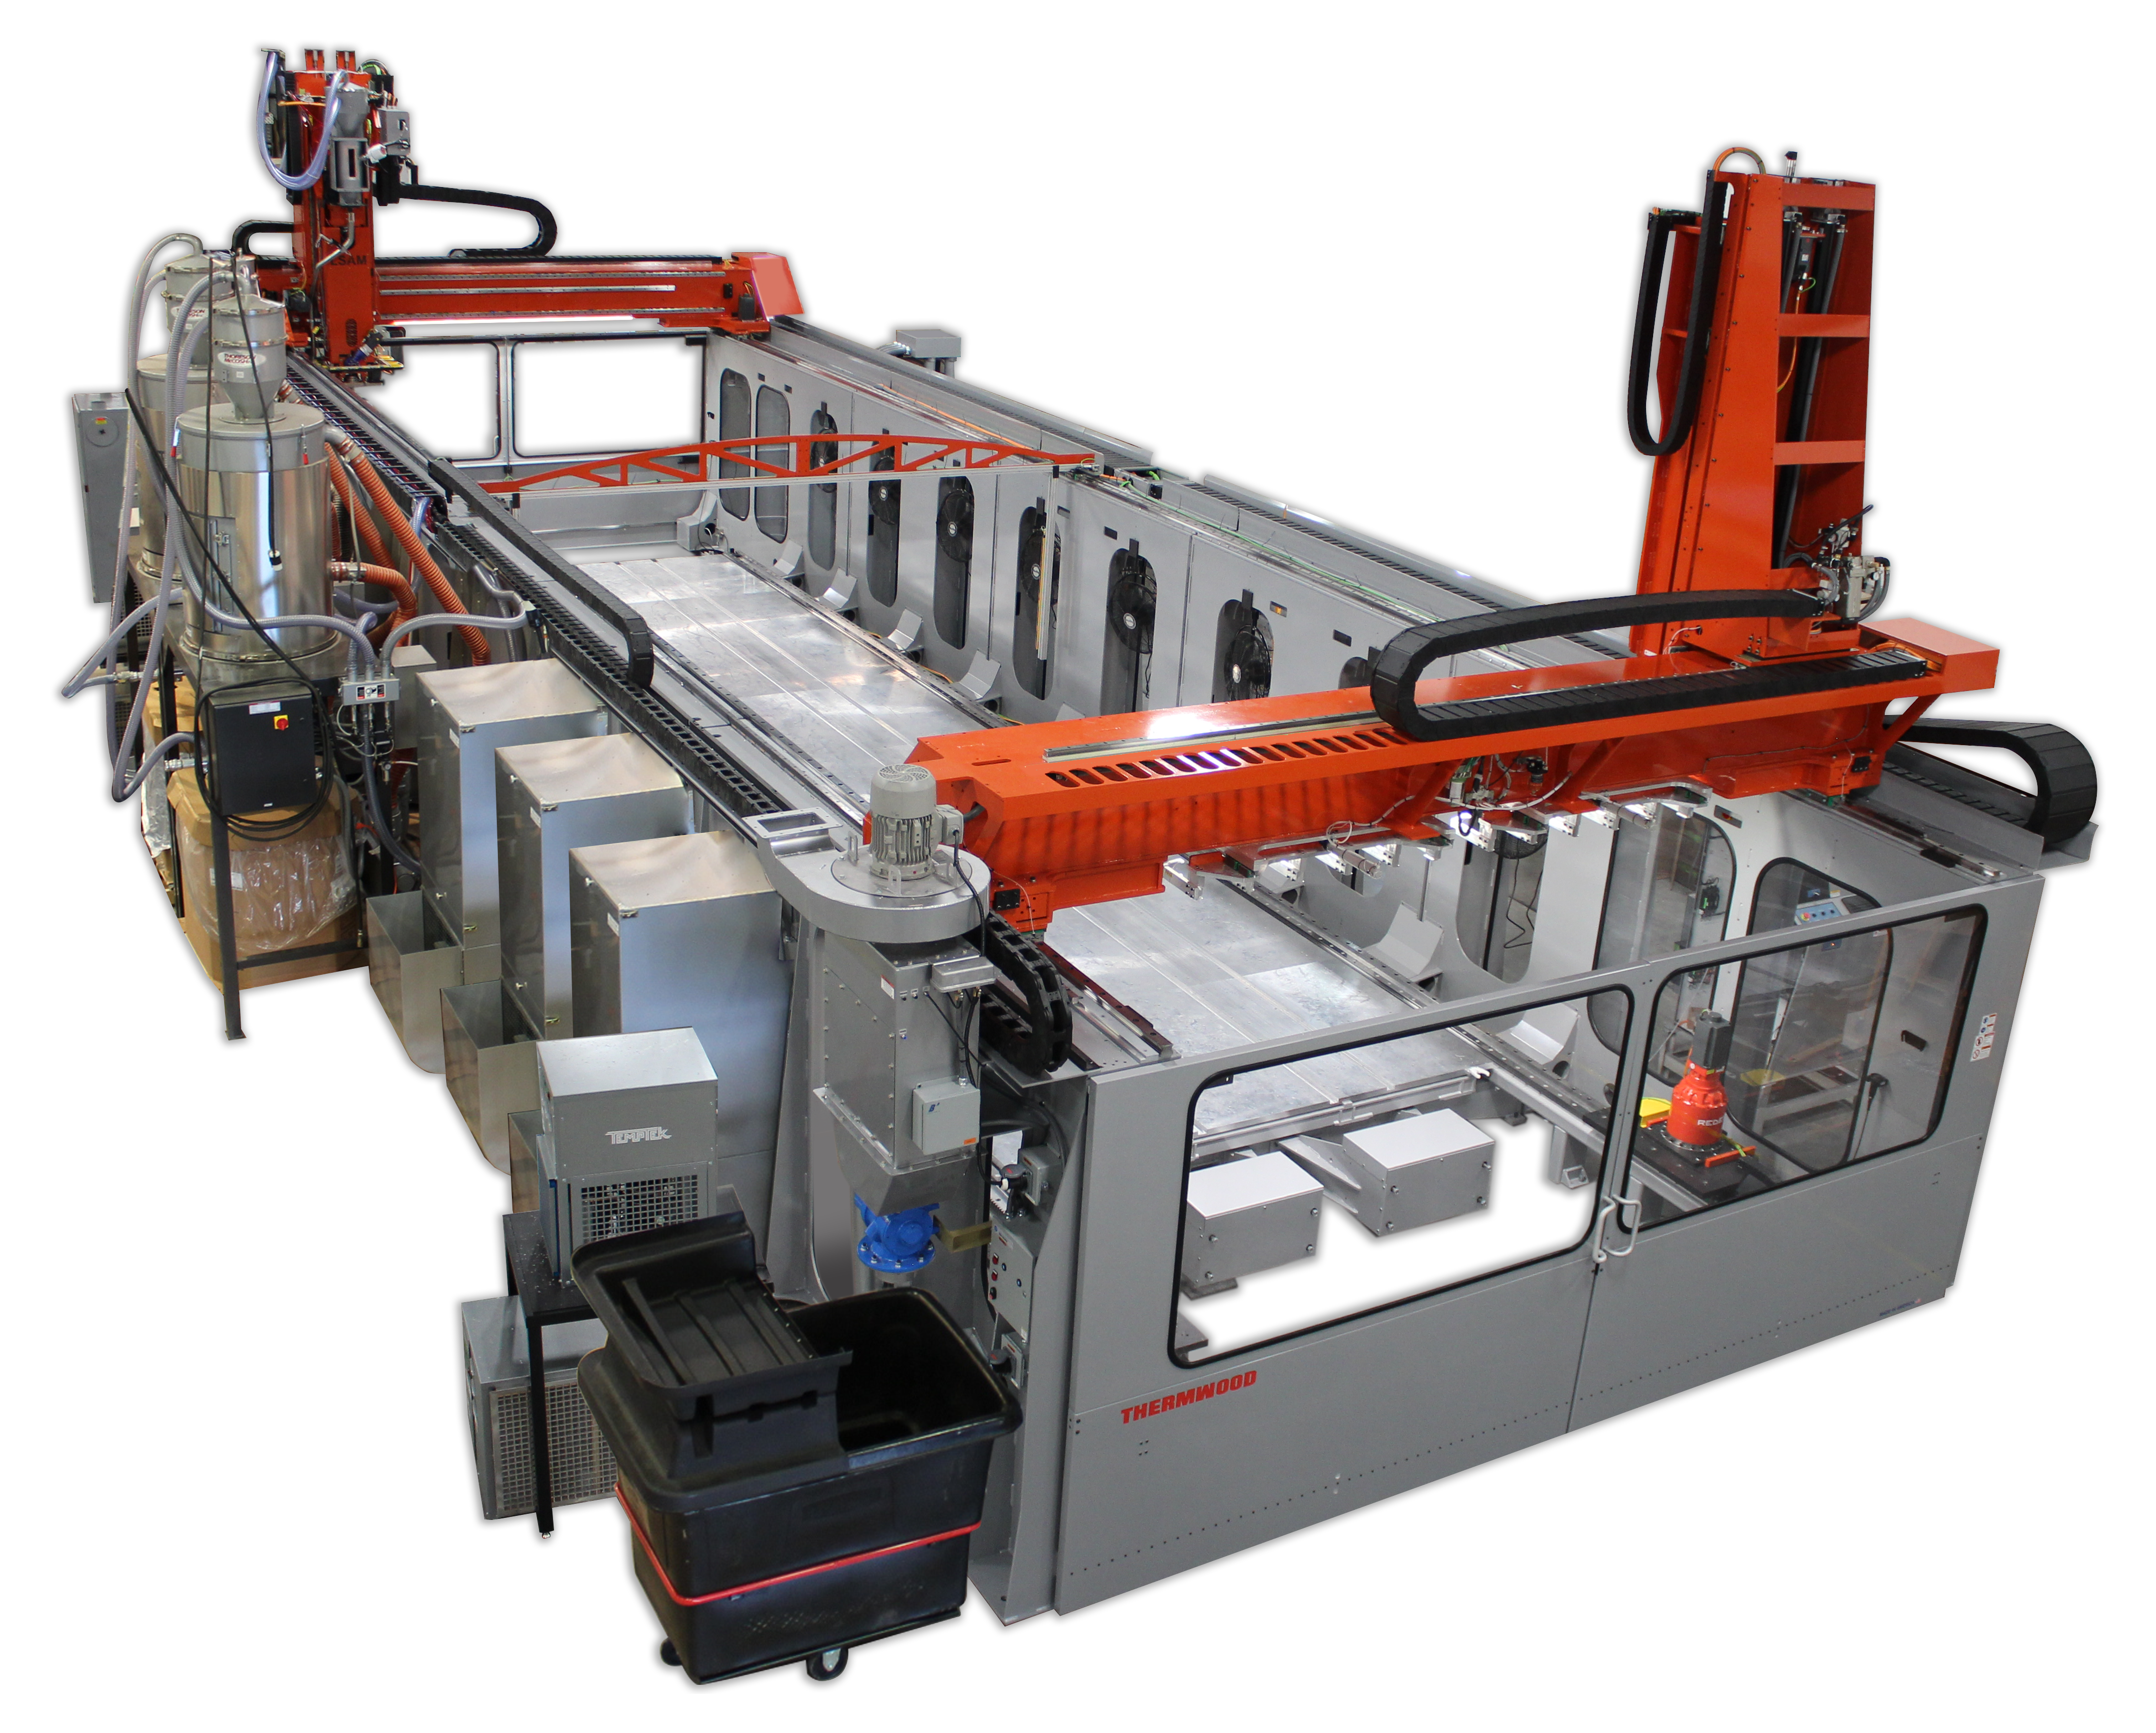 Picture of large scale 3D printer